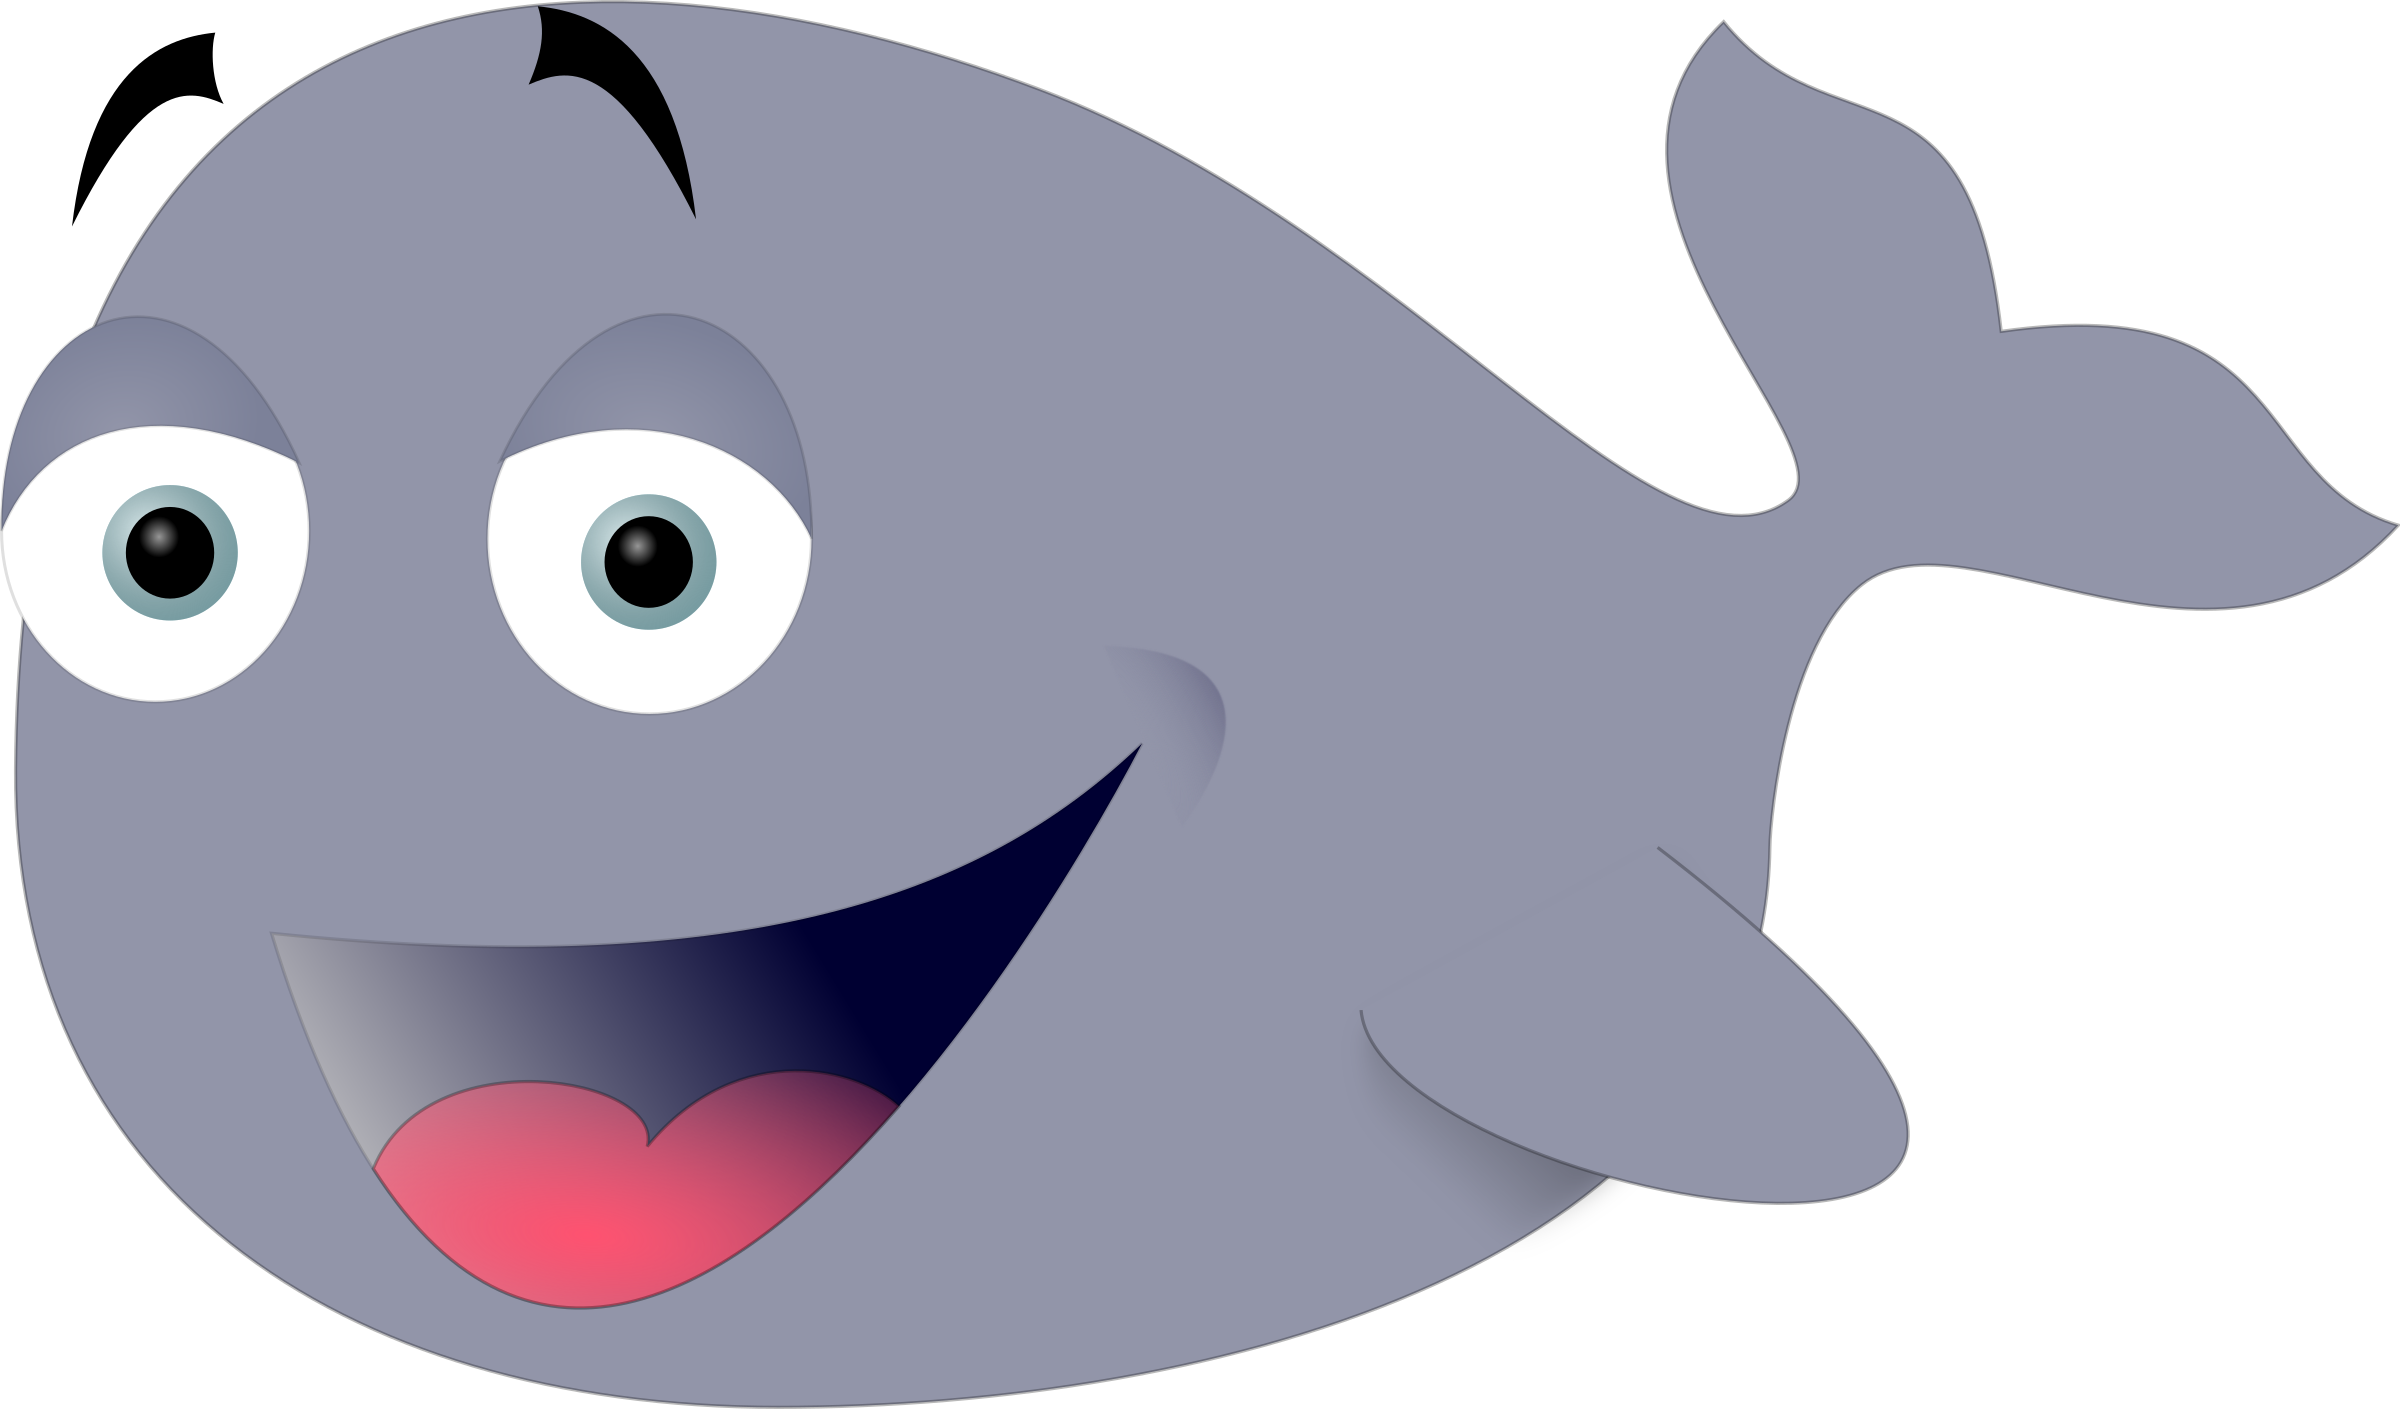 Cool clipart whale. Funny big image png